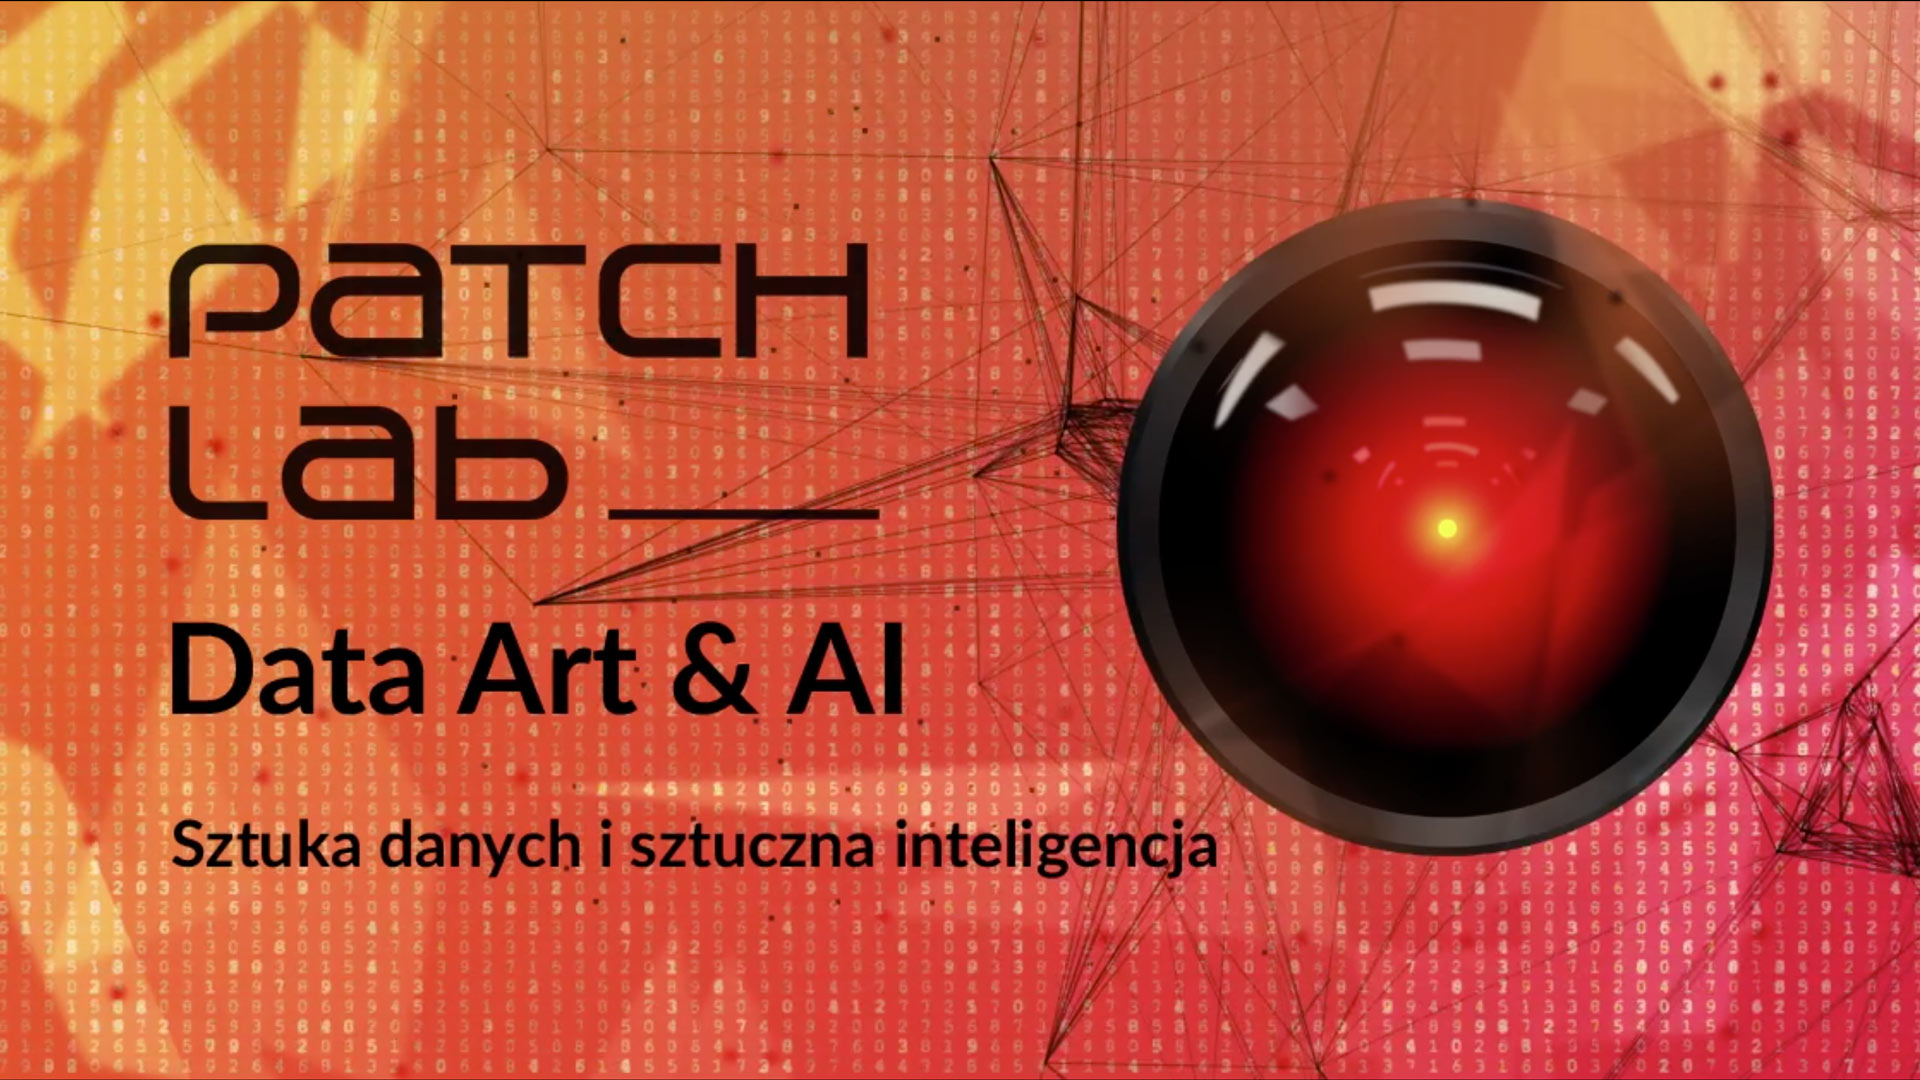 Patchlab Digital Art Festival 2017 | LPM 2015 > 2018